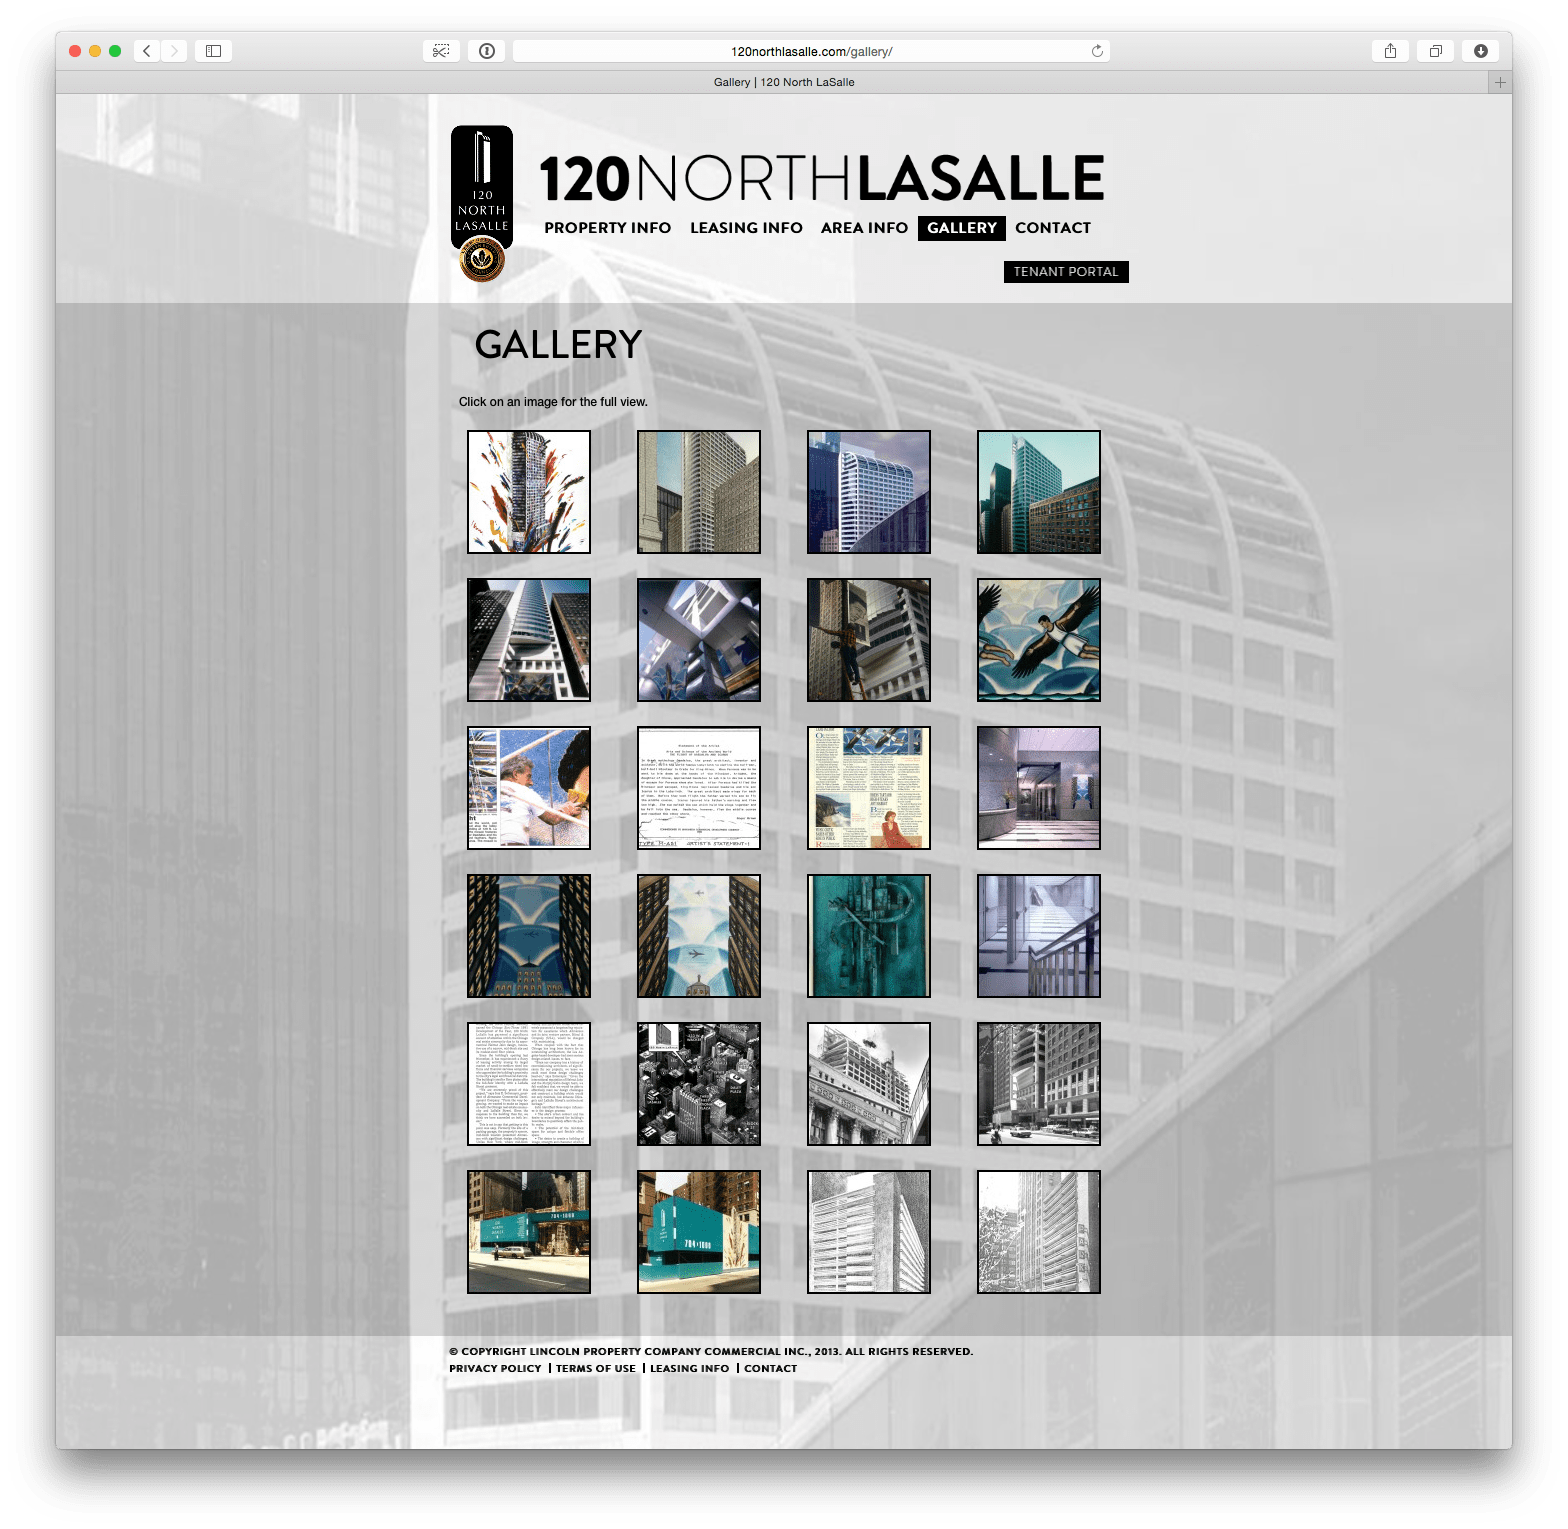 120NorthLasalle.com Gallery Page